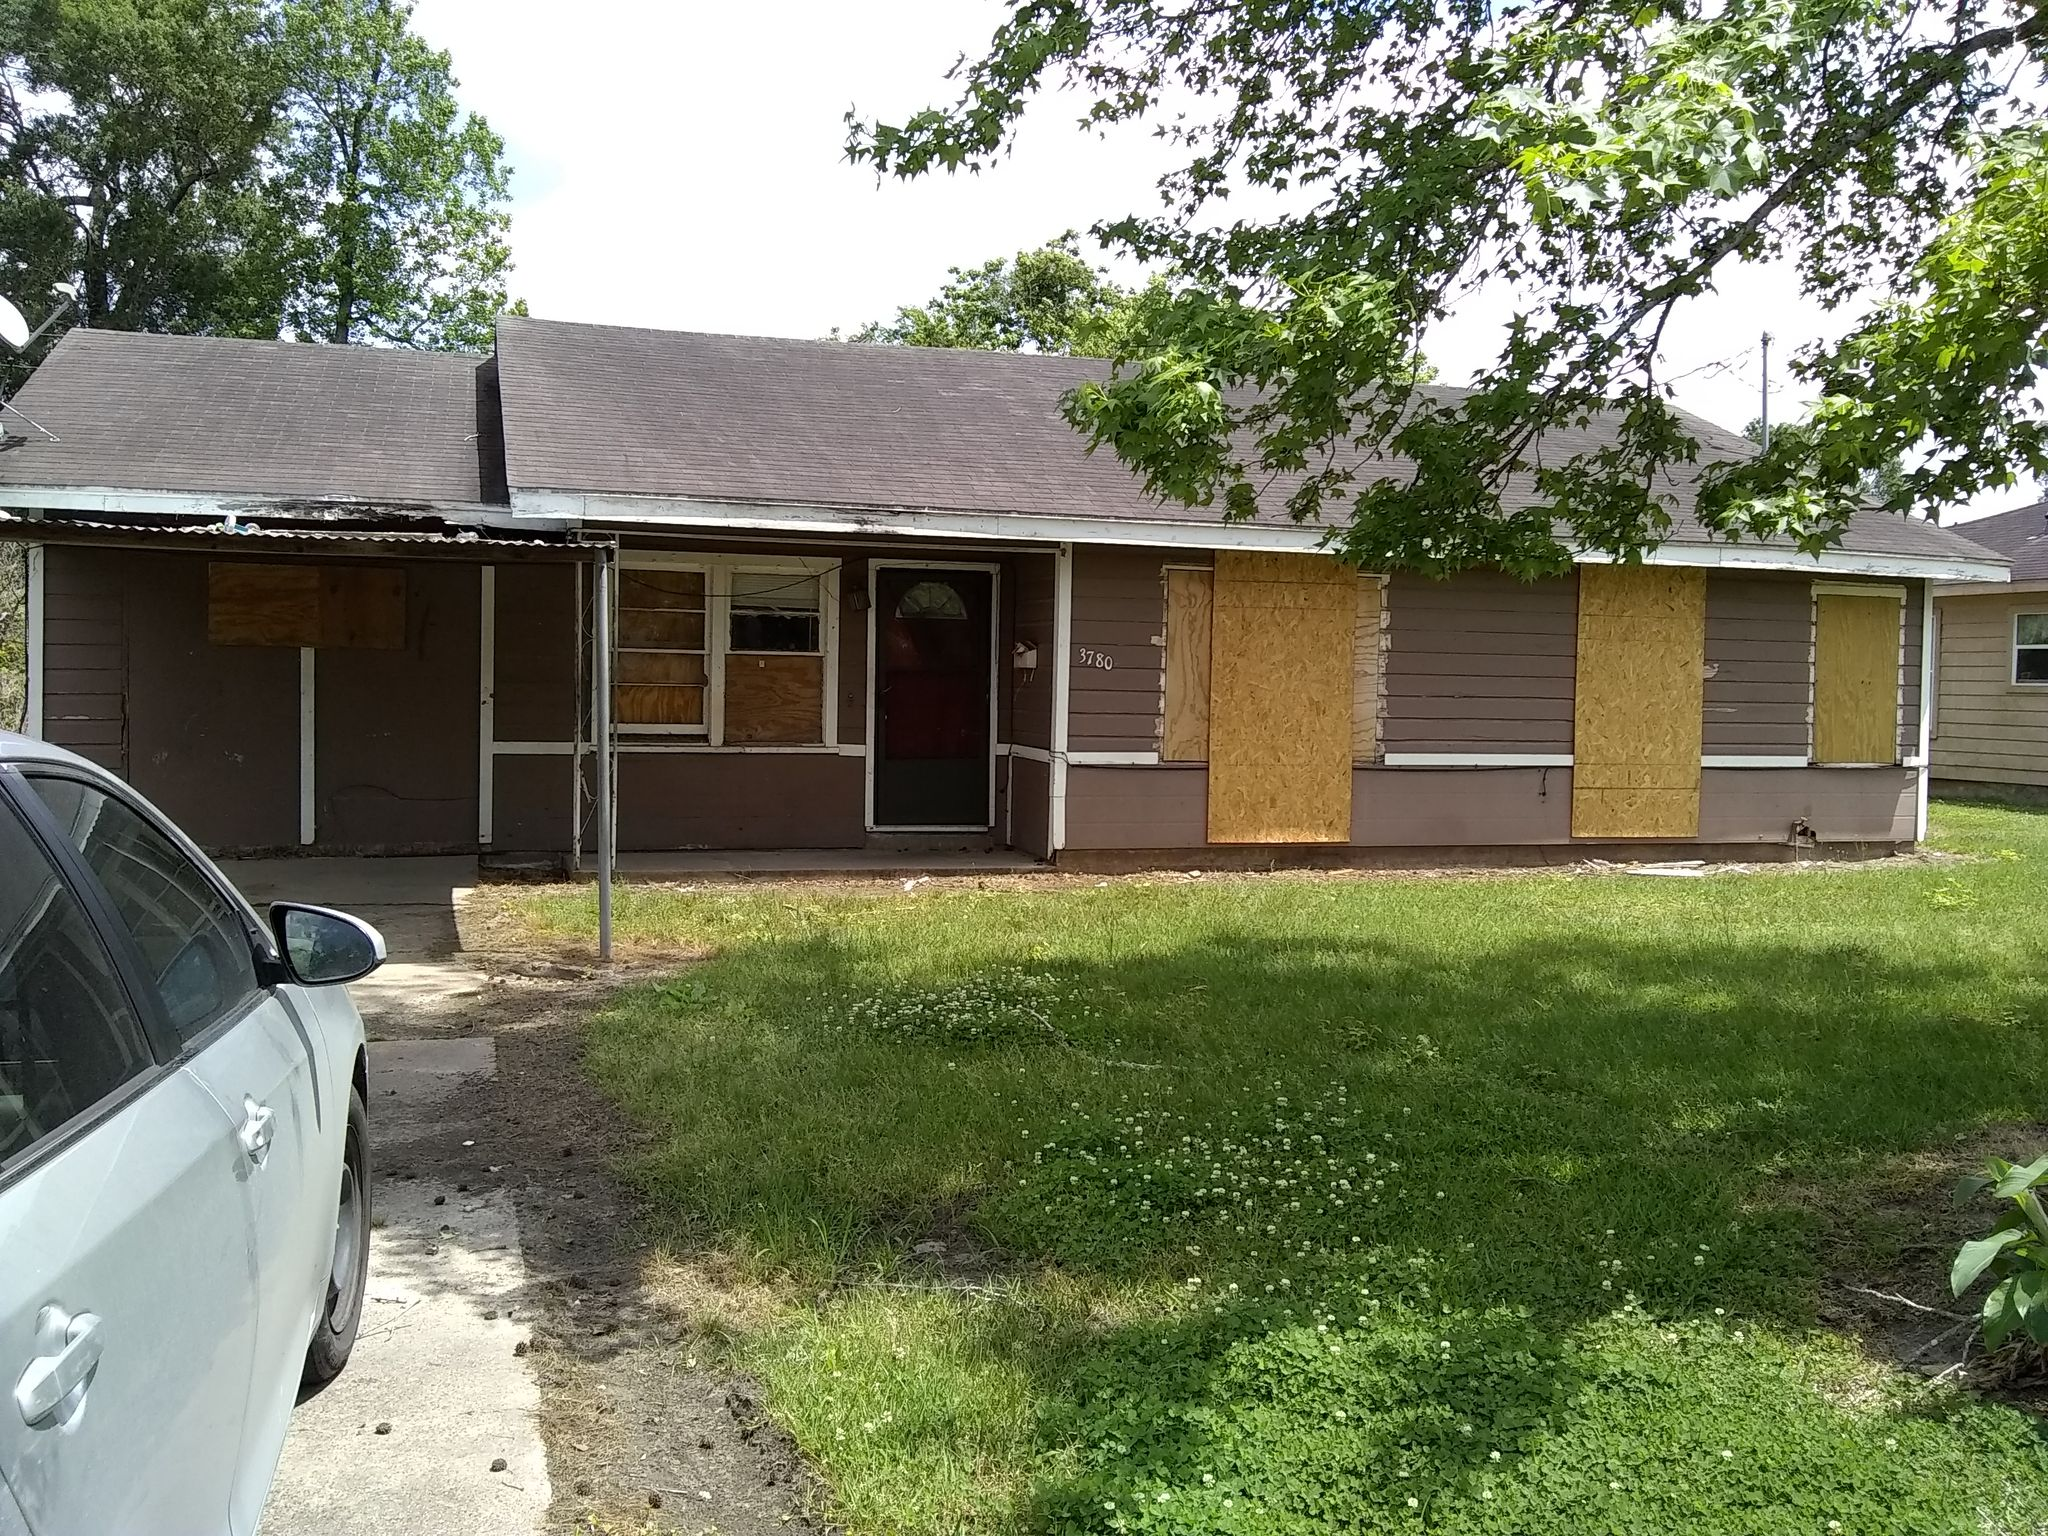 3780 Detroit St Beaumont Tx 77703 4 Bed 1 Bath Single Family